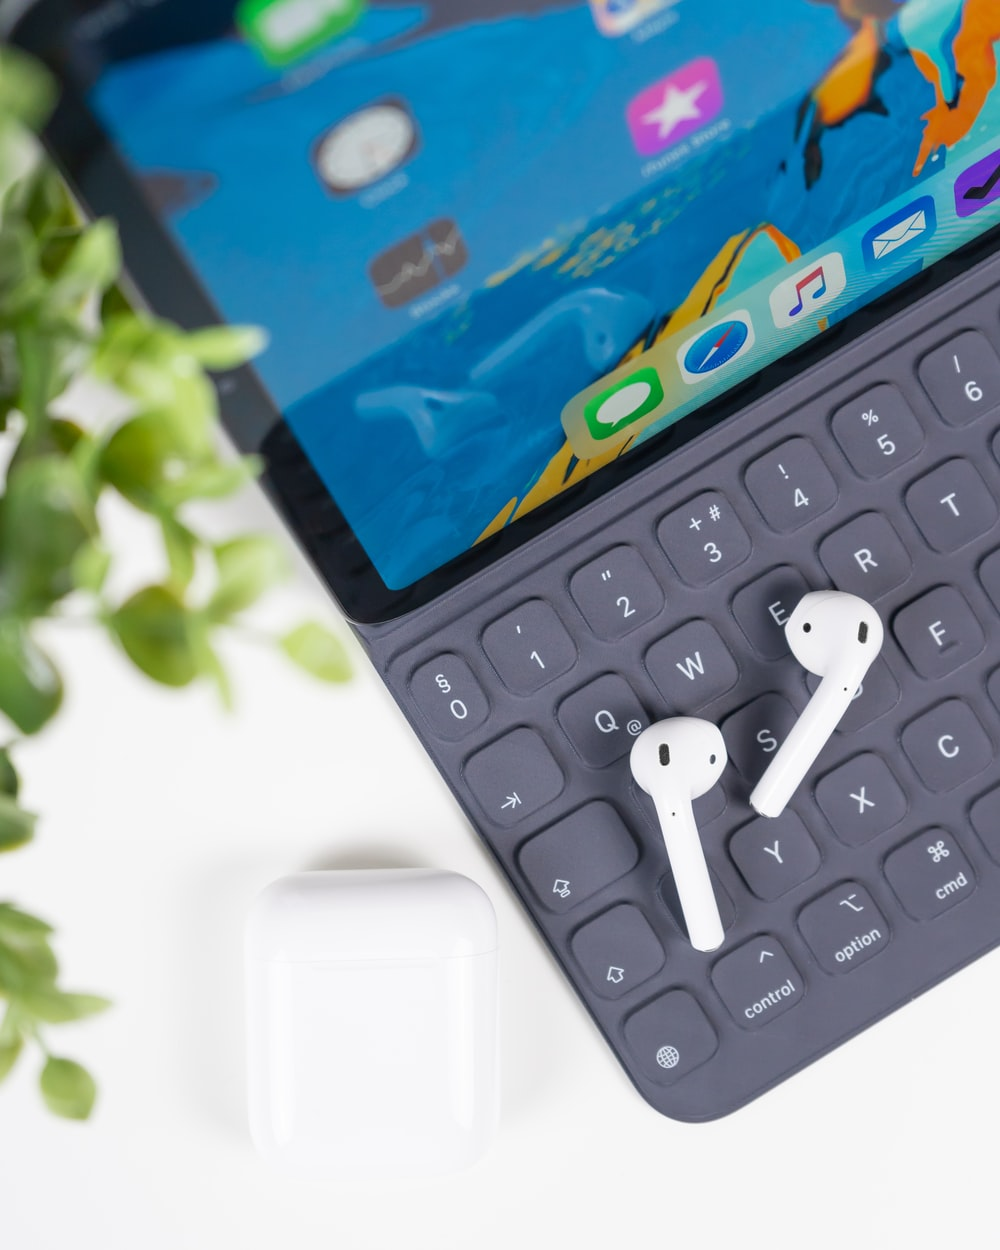 space gray iPad Pro with Apple AirPods